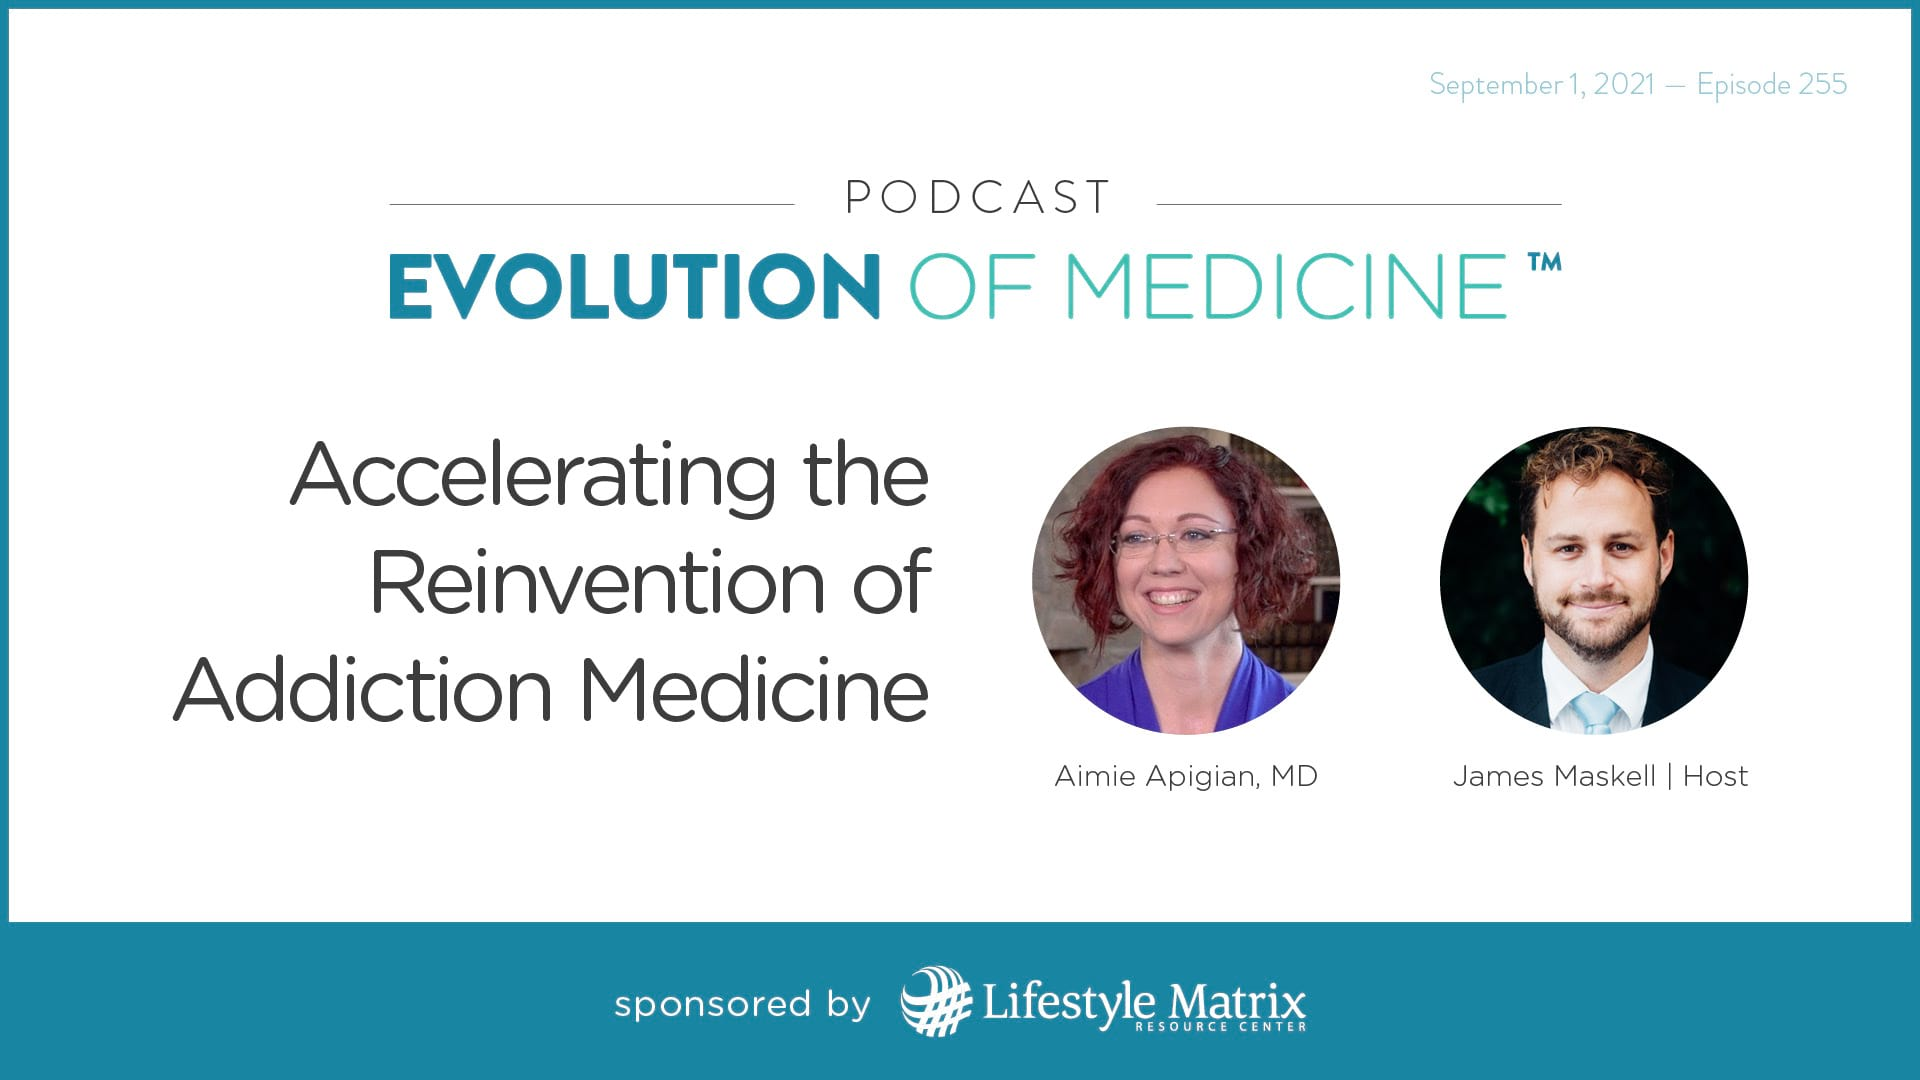 Accelerating the Reinvention of Addiction Medicine